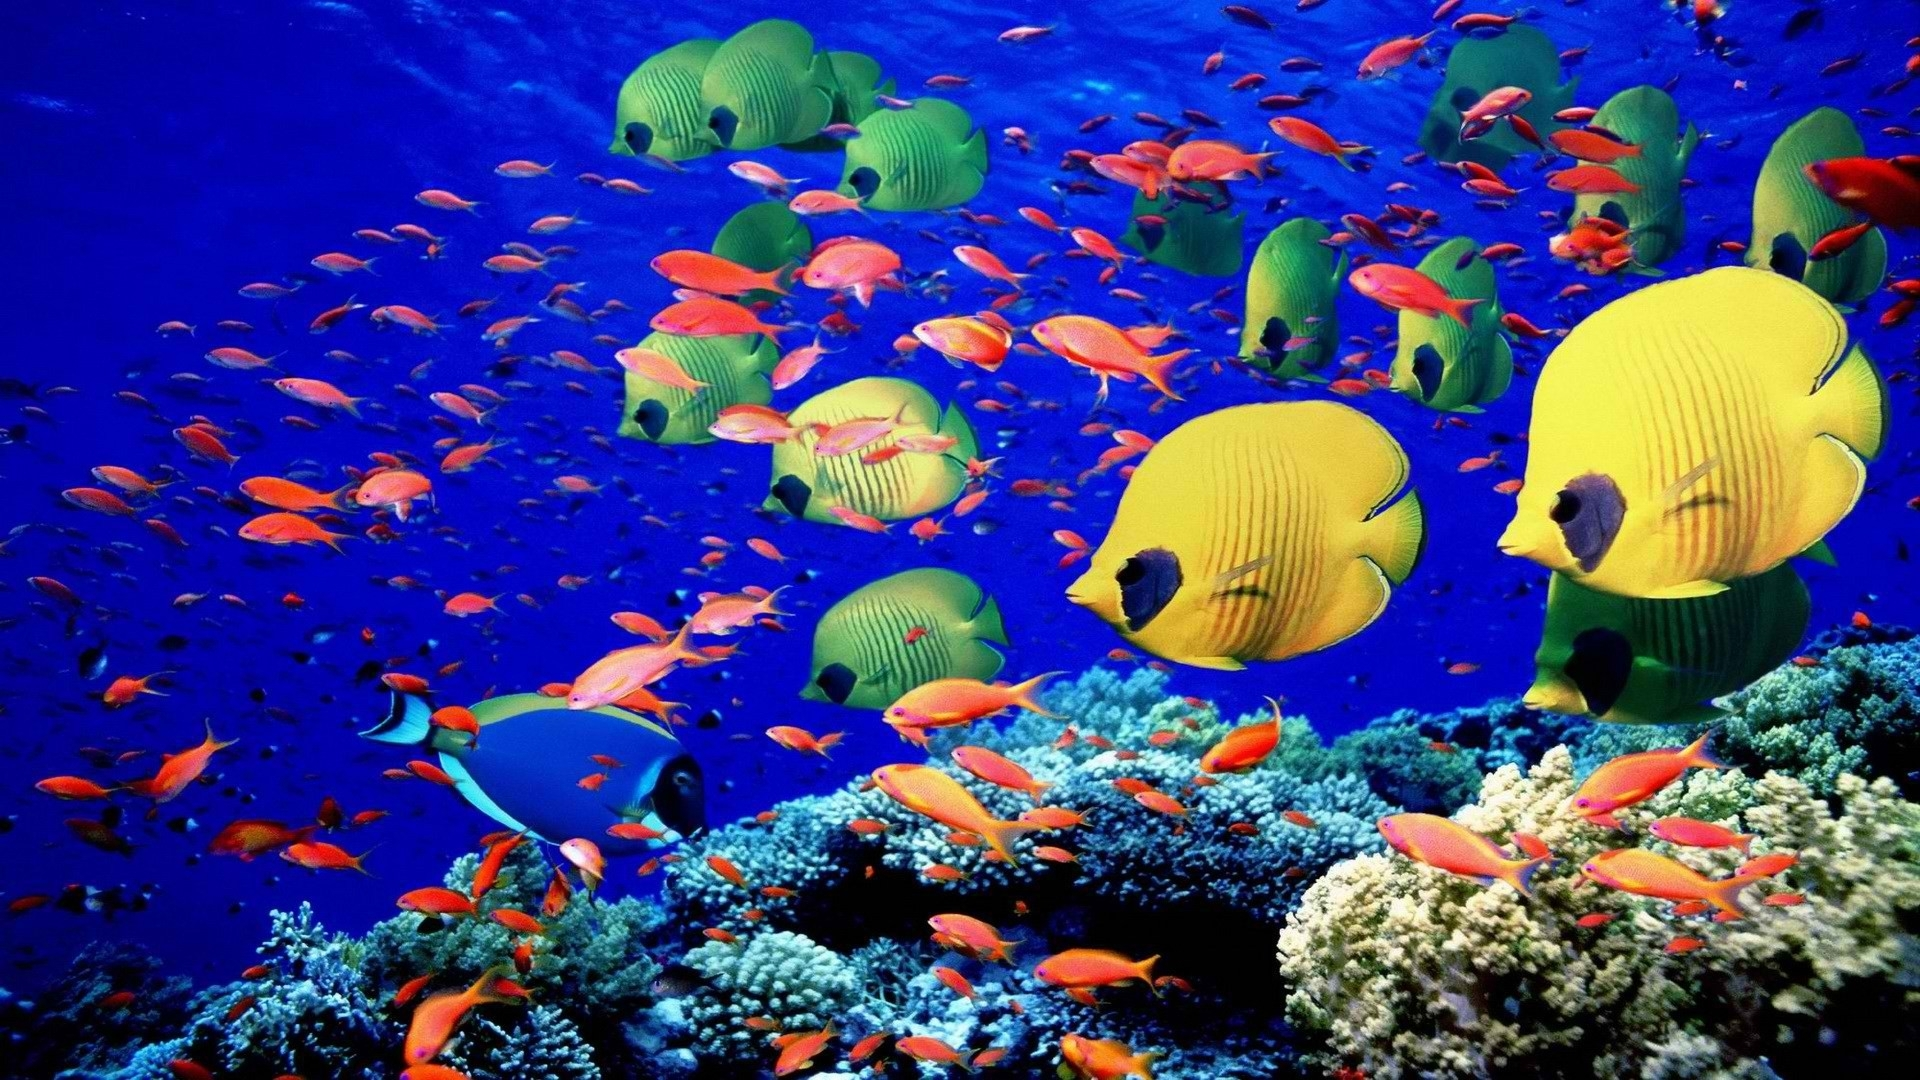 35 underwater coral reef wallpaper on wallpapersafari - Sea coral wallpaper ...